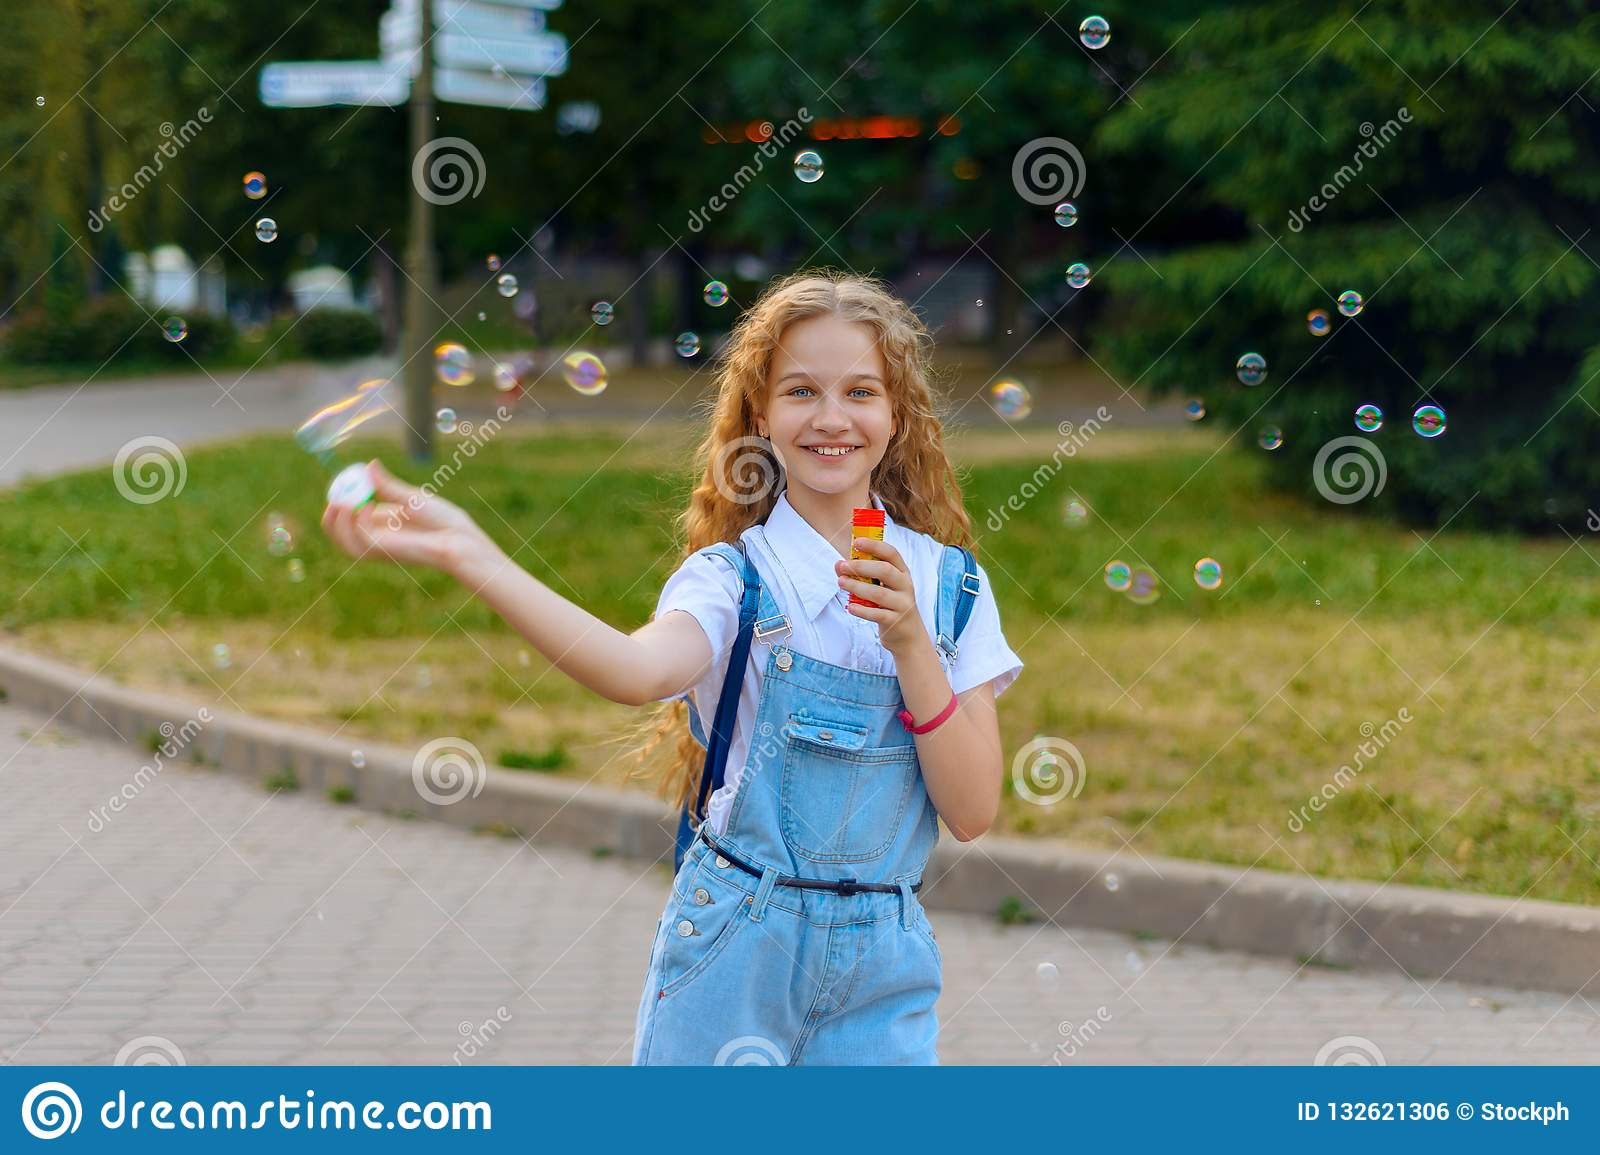 Girl teenager happy smiling blows soap bubbles